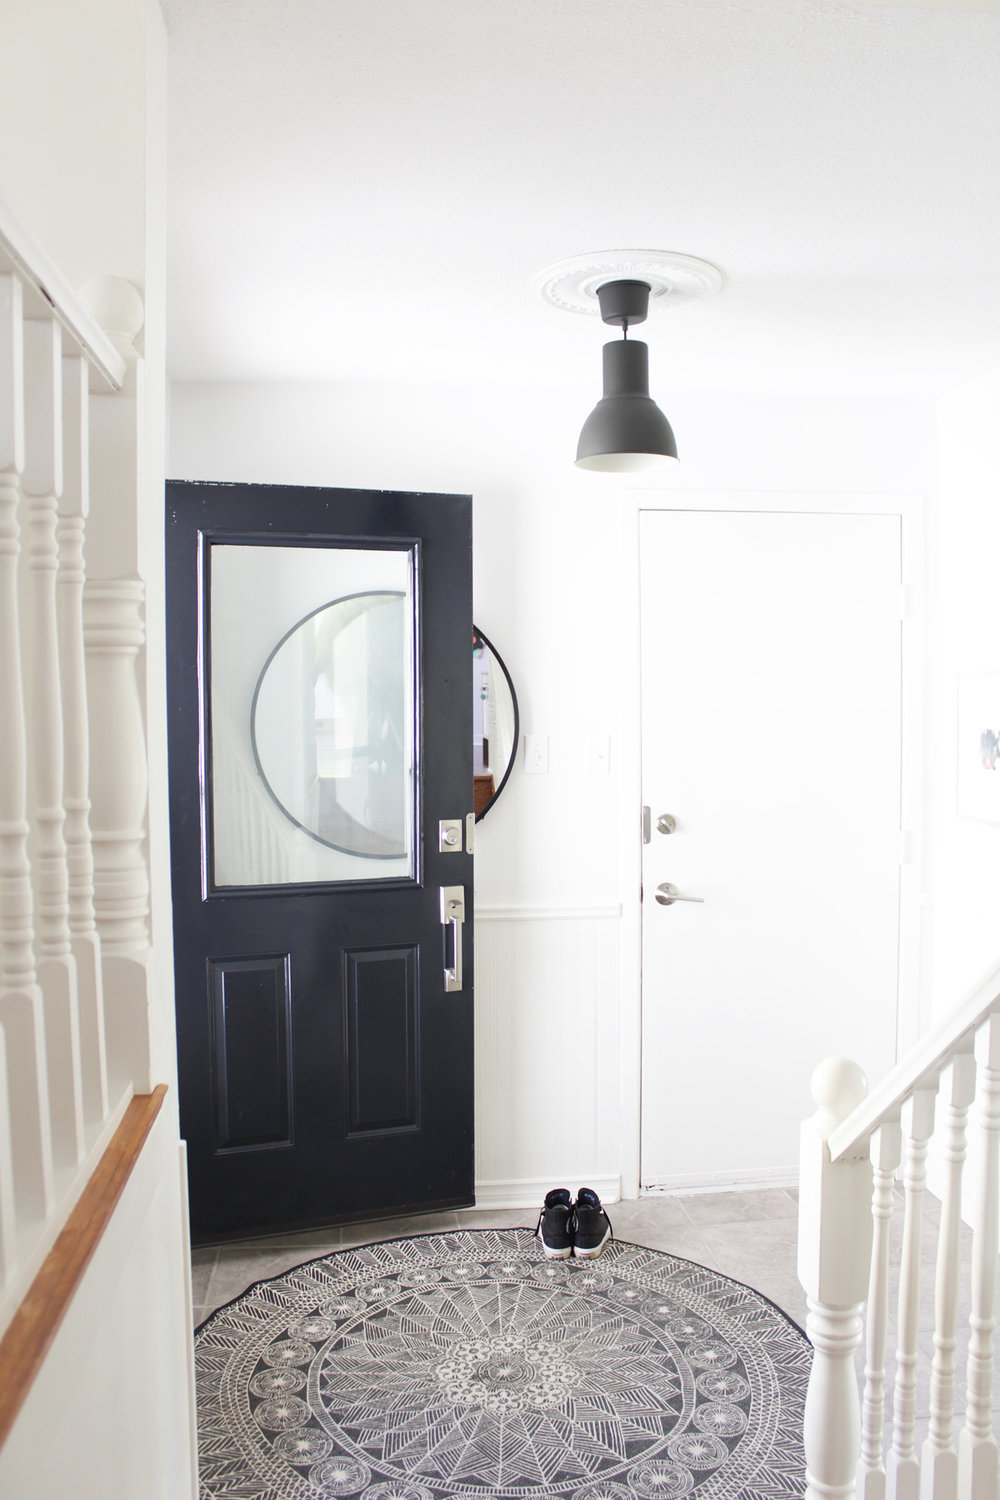 The pattern on this circular rug in the entry way is great and the large mirror is on trend. We do have similar taste and I know we would chat non stop if we were in the same room.